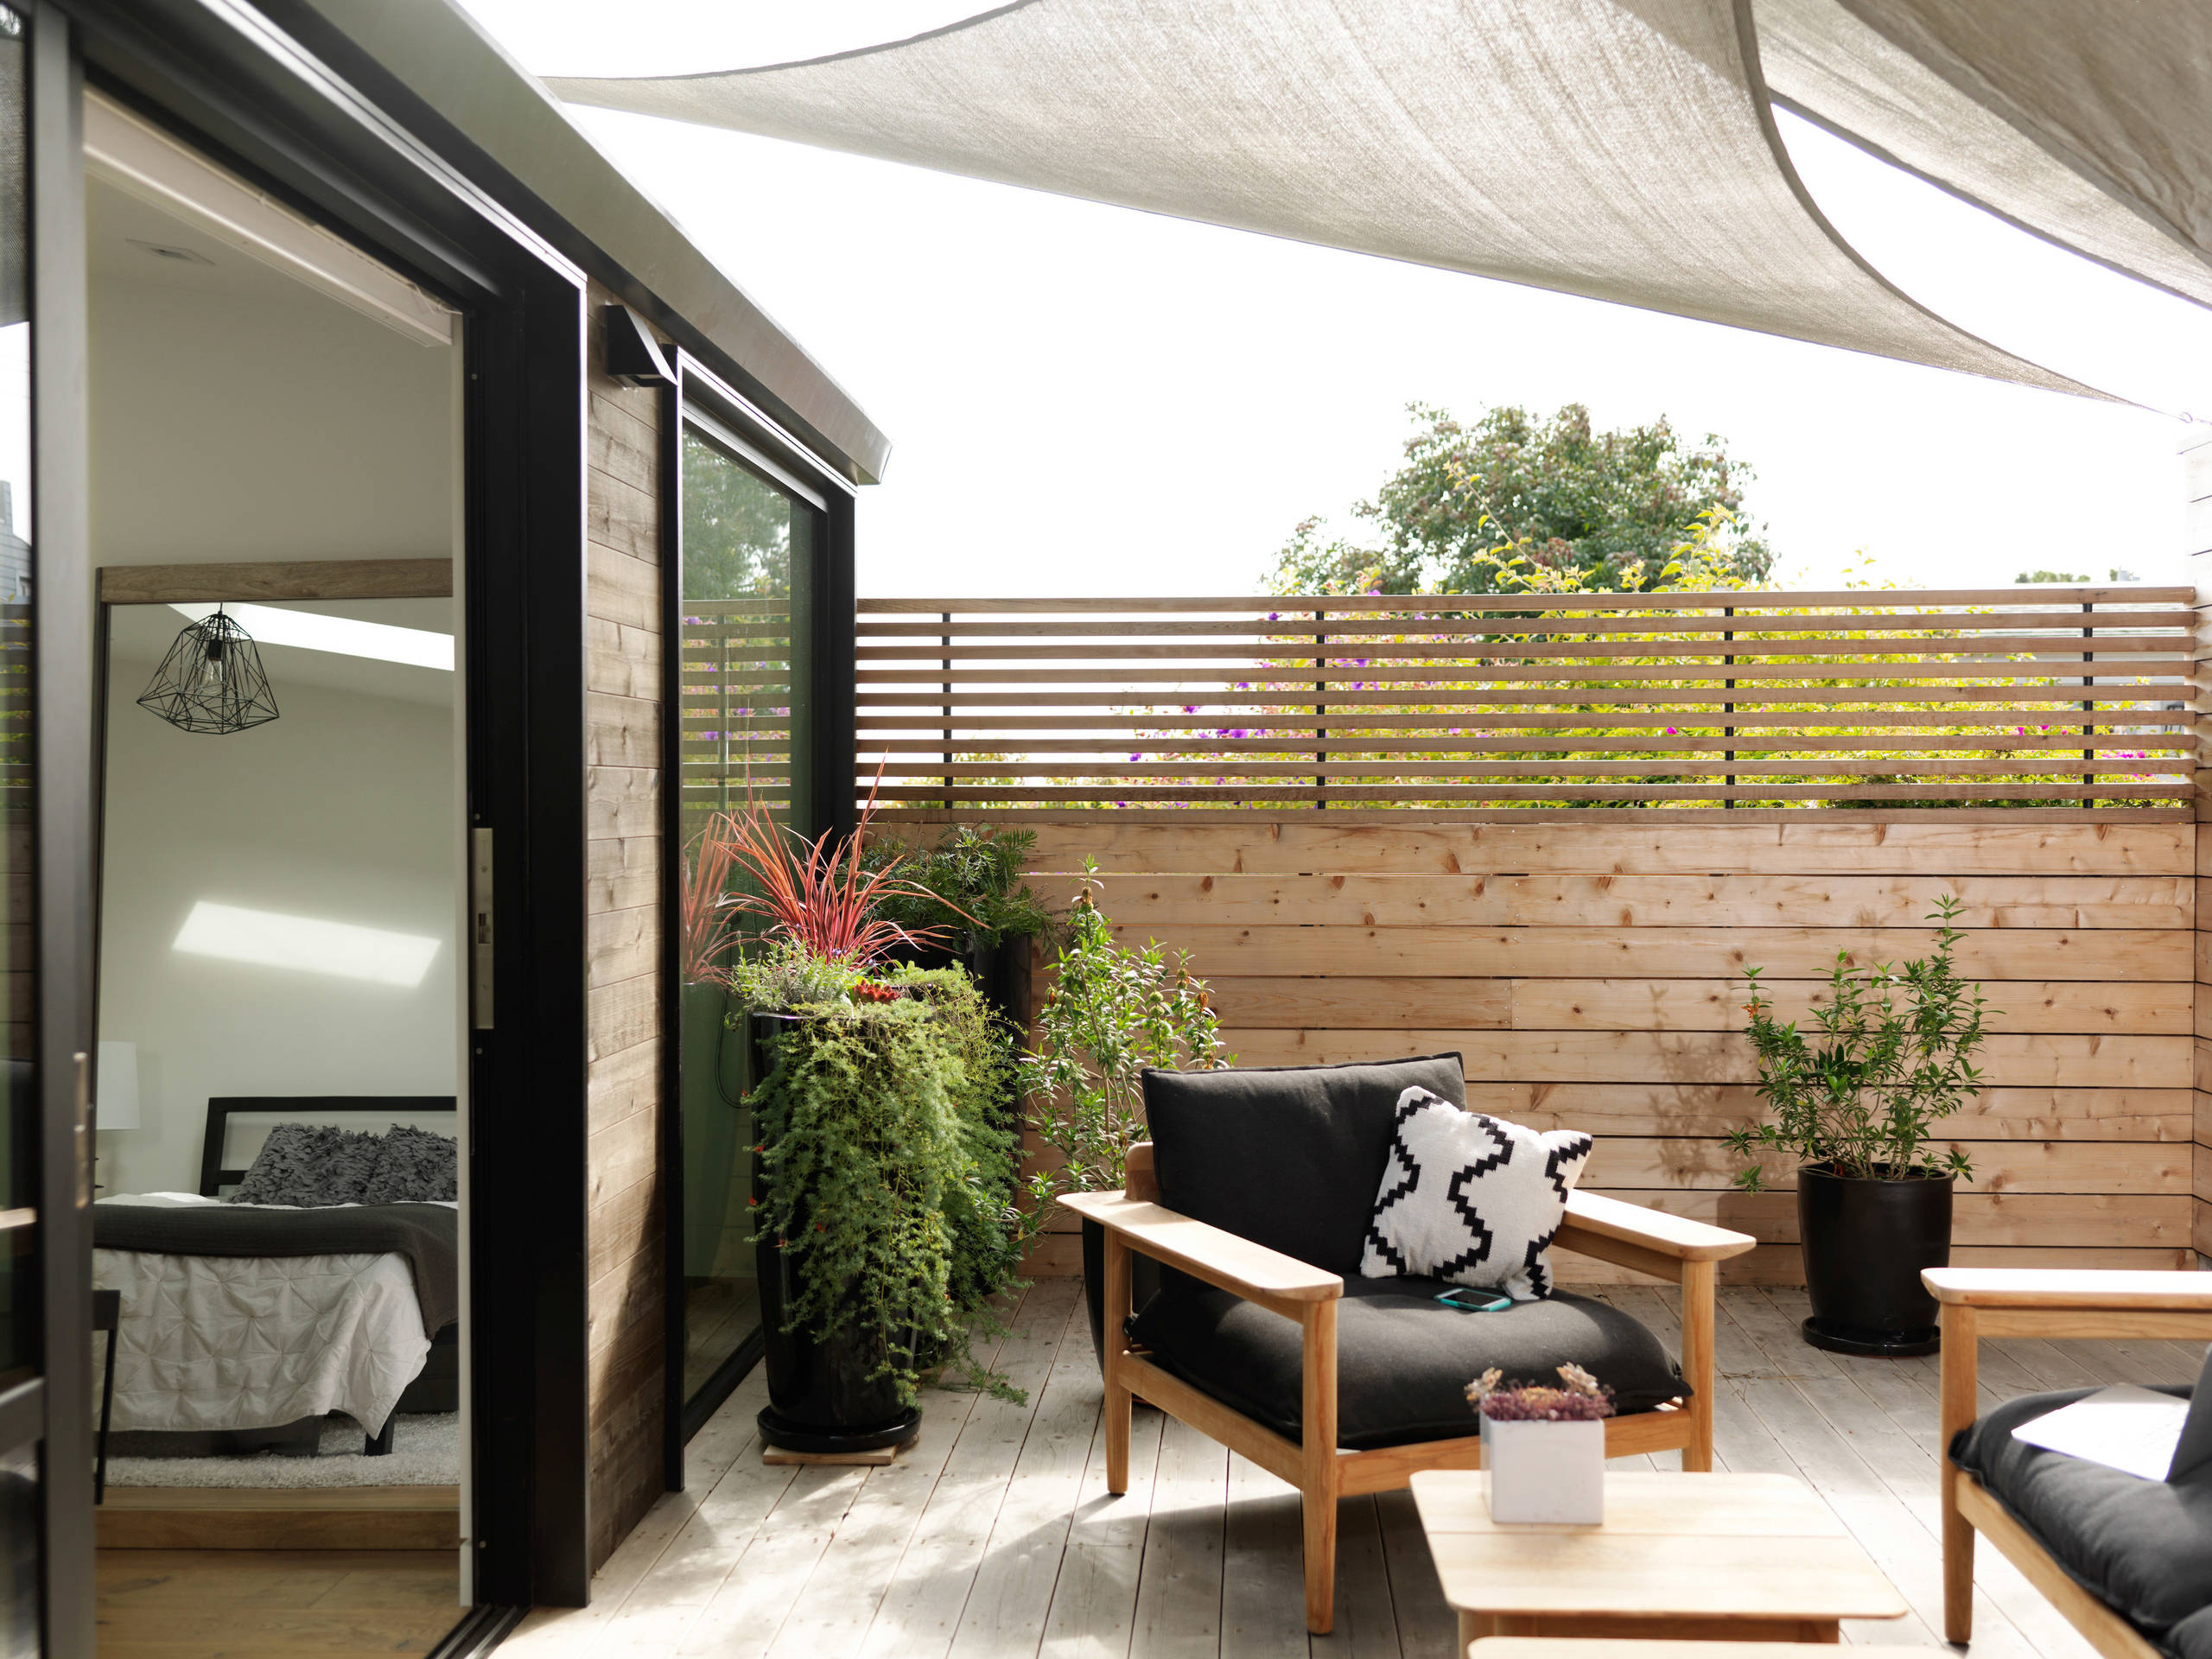 5 Beautiful Rooftop Design Pictures & Ideas - November, 5  Houzz